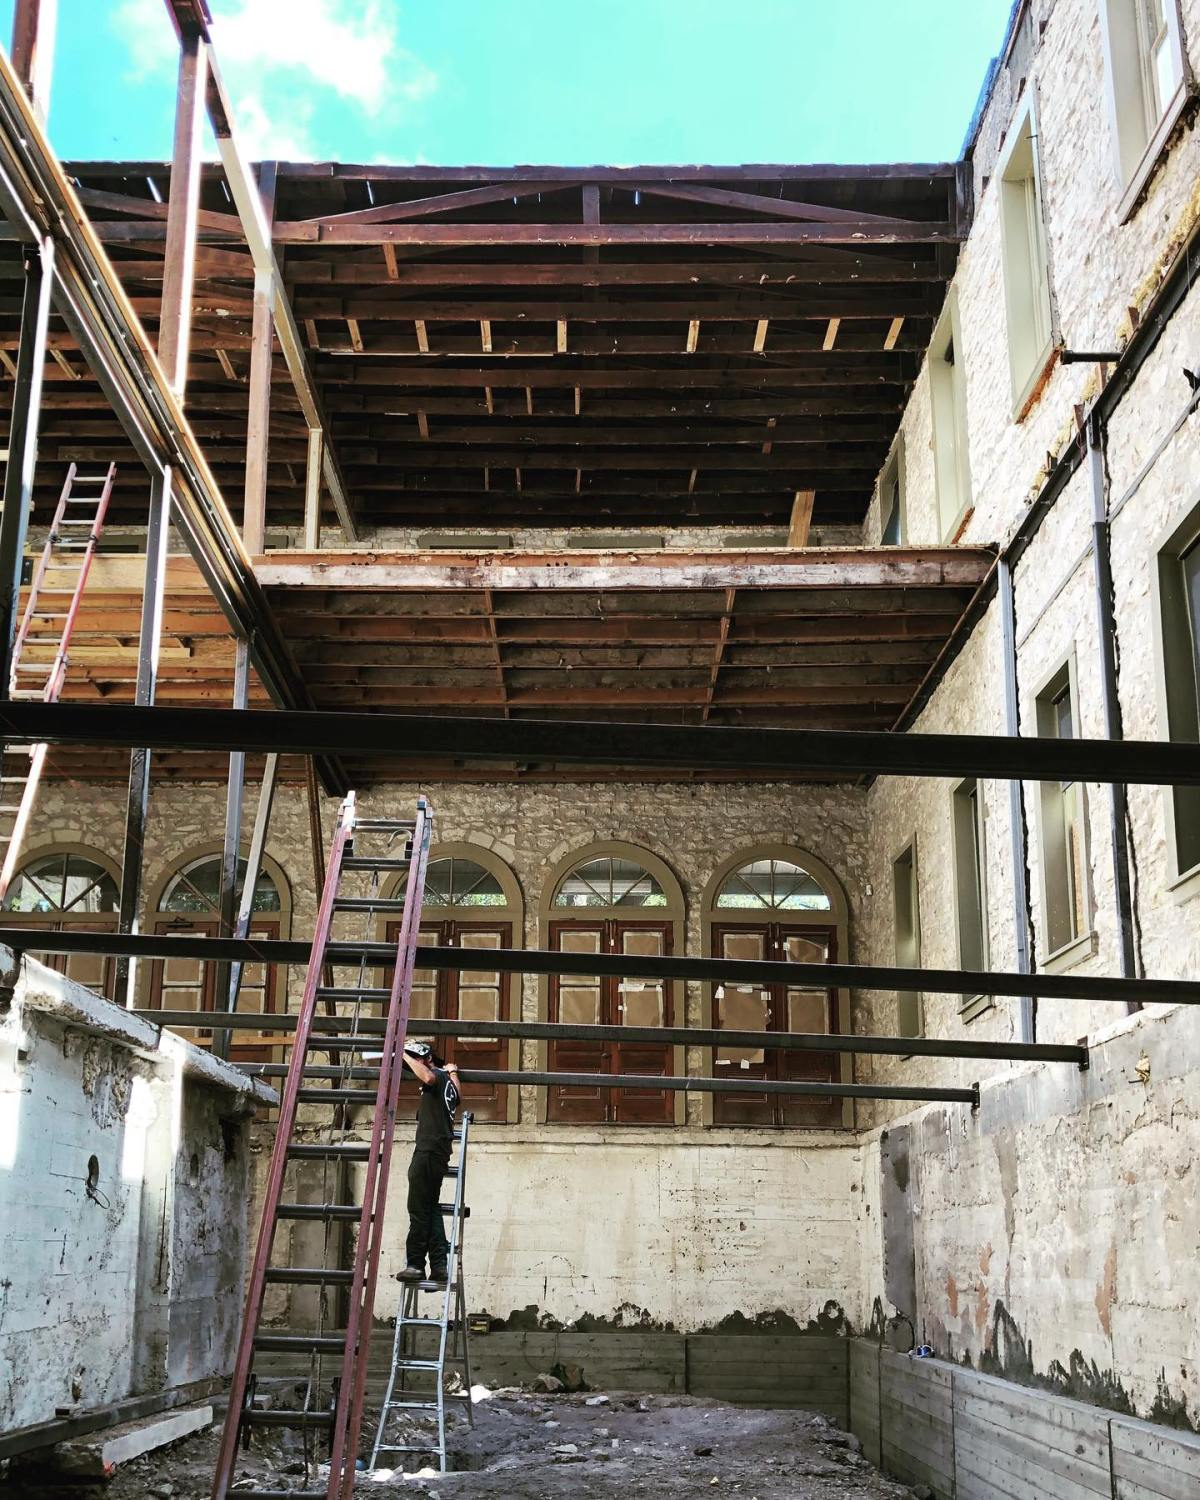 Should me make it a skylight!? Oh wait there's another floor going on top of this 120 yr old building!